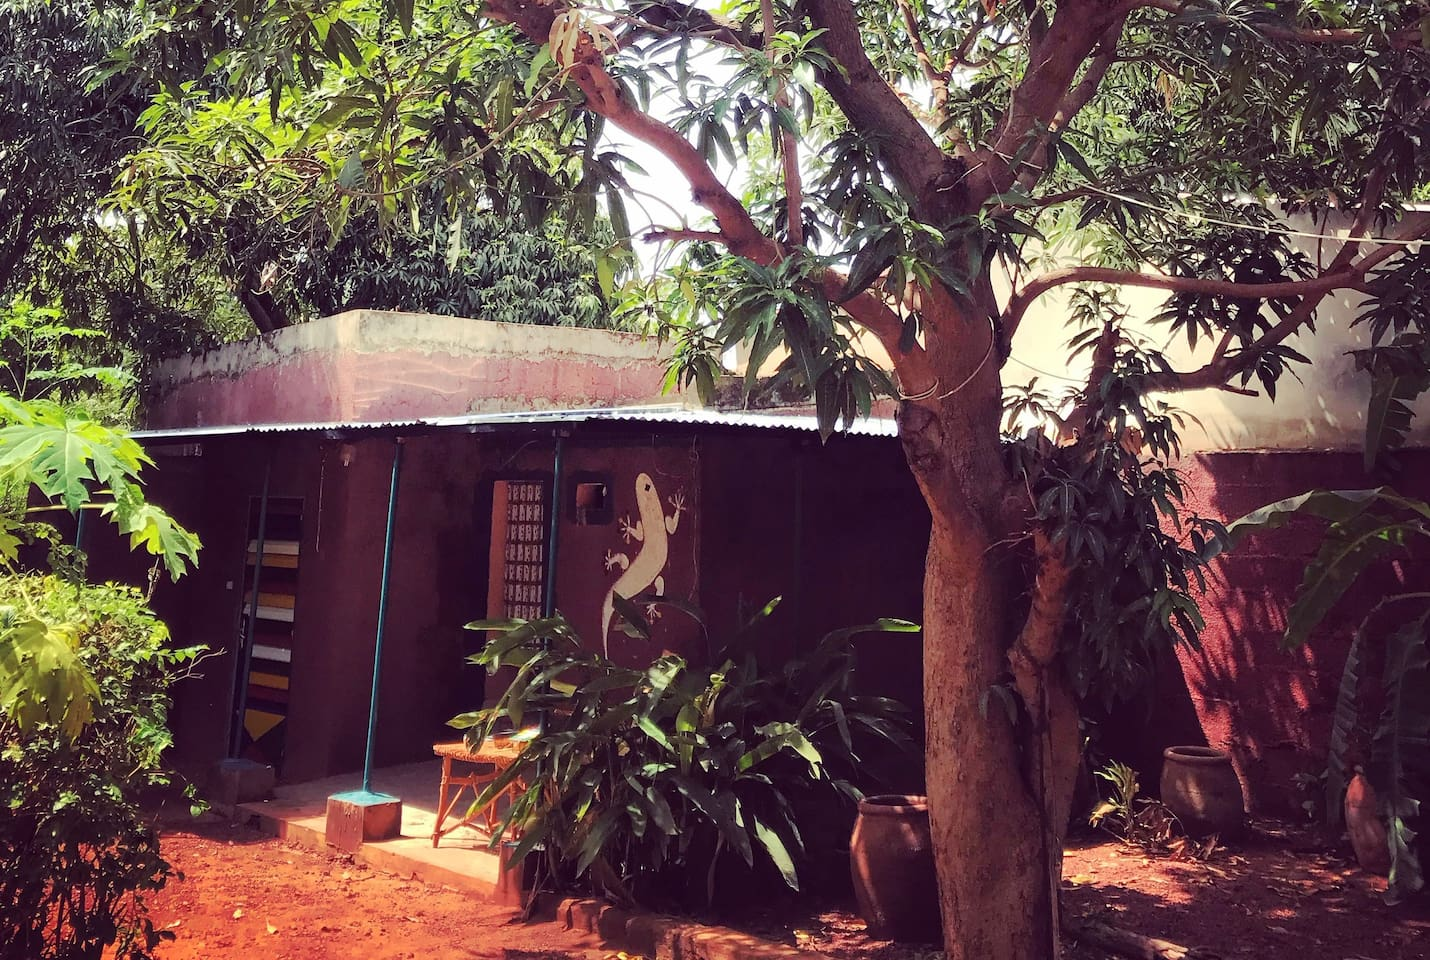 Private bungalow with shower, toilet and outside sitting area.